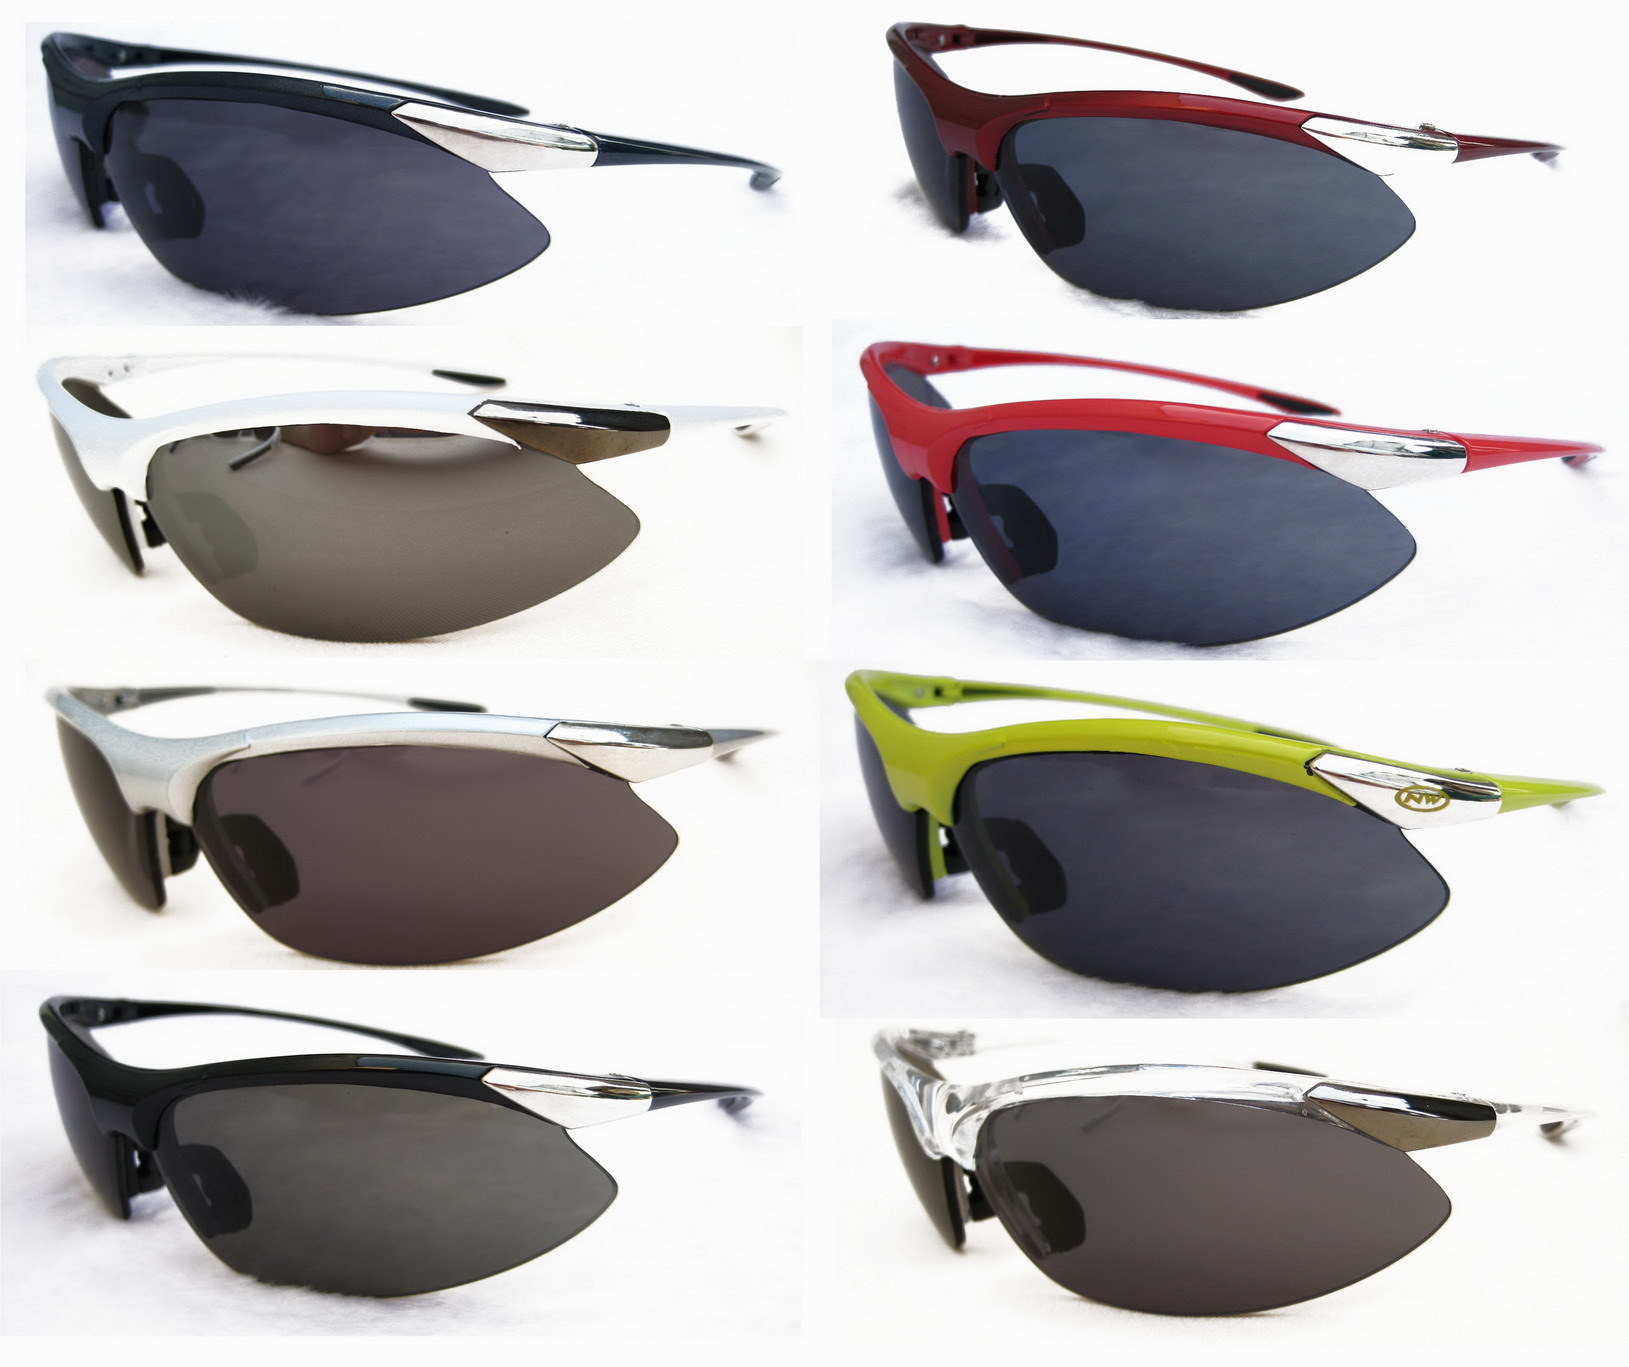 984088c0241 X Loop Sunglasses Singapore